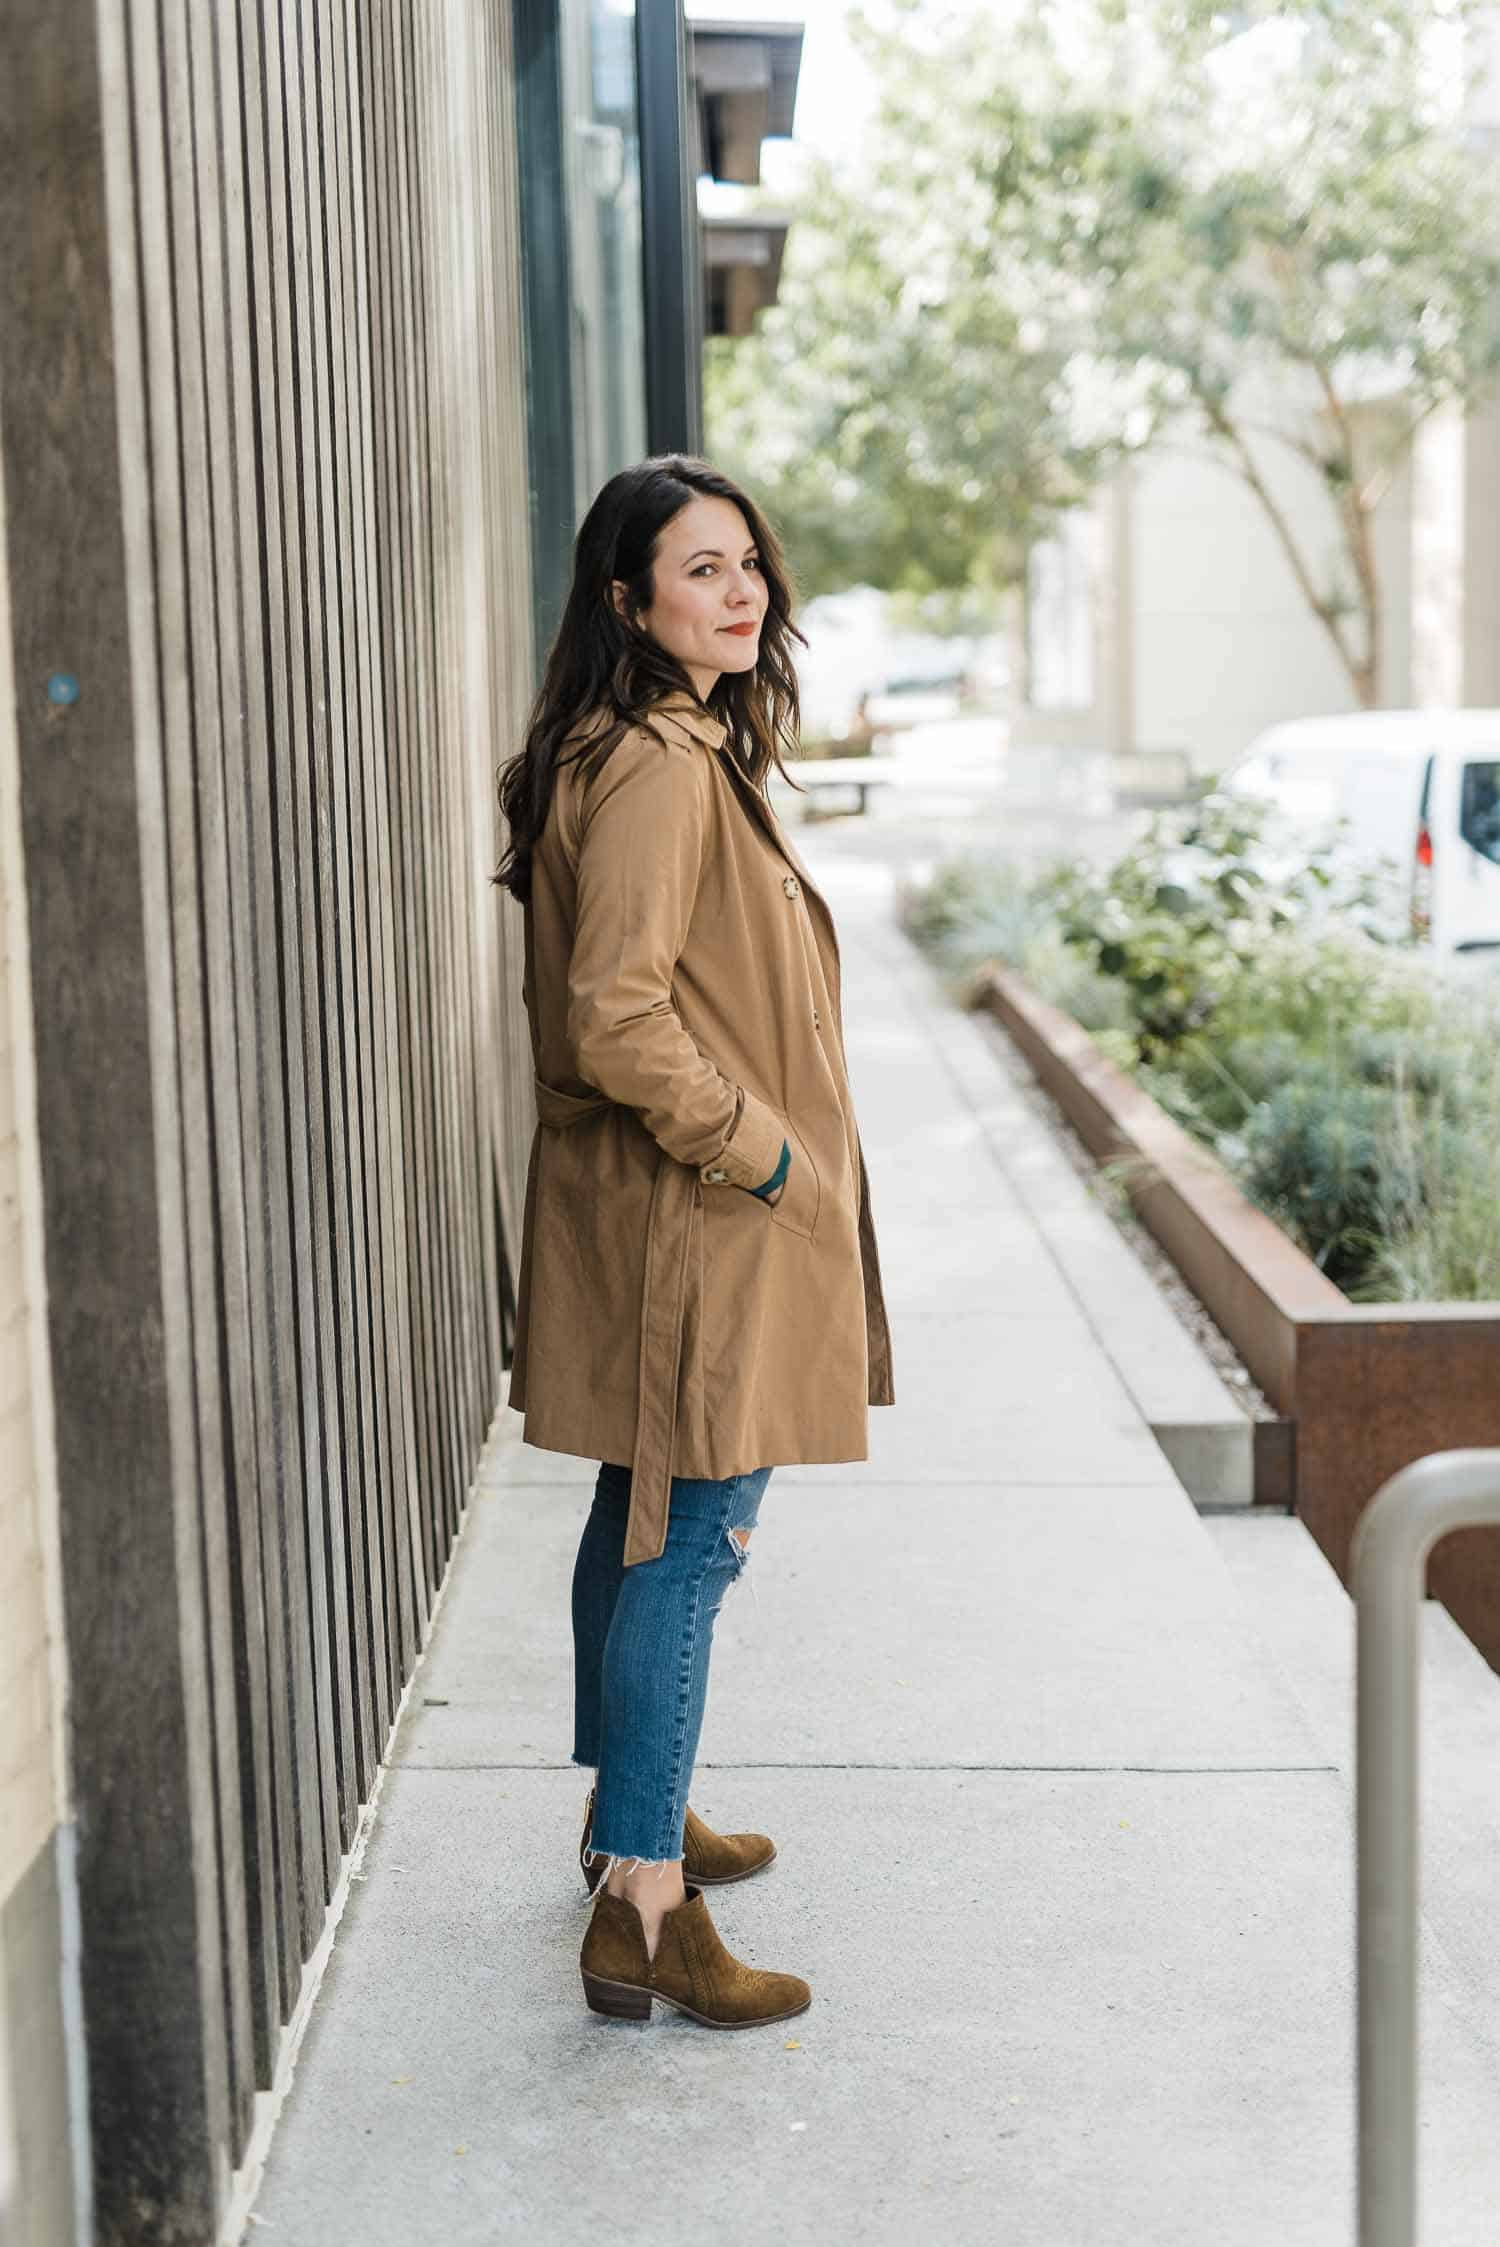 western trend, outfit ideas - My Style Vita